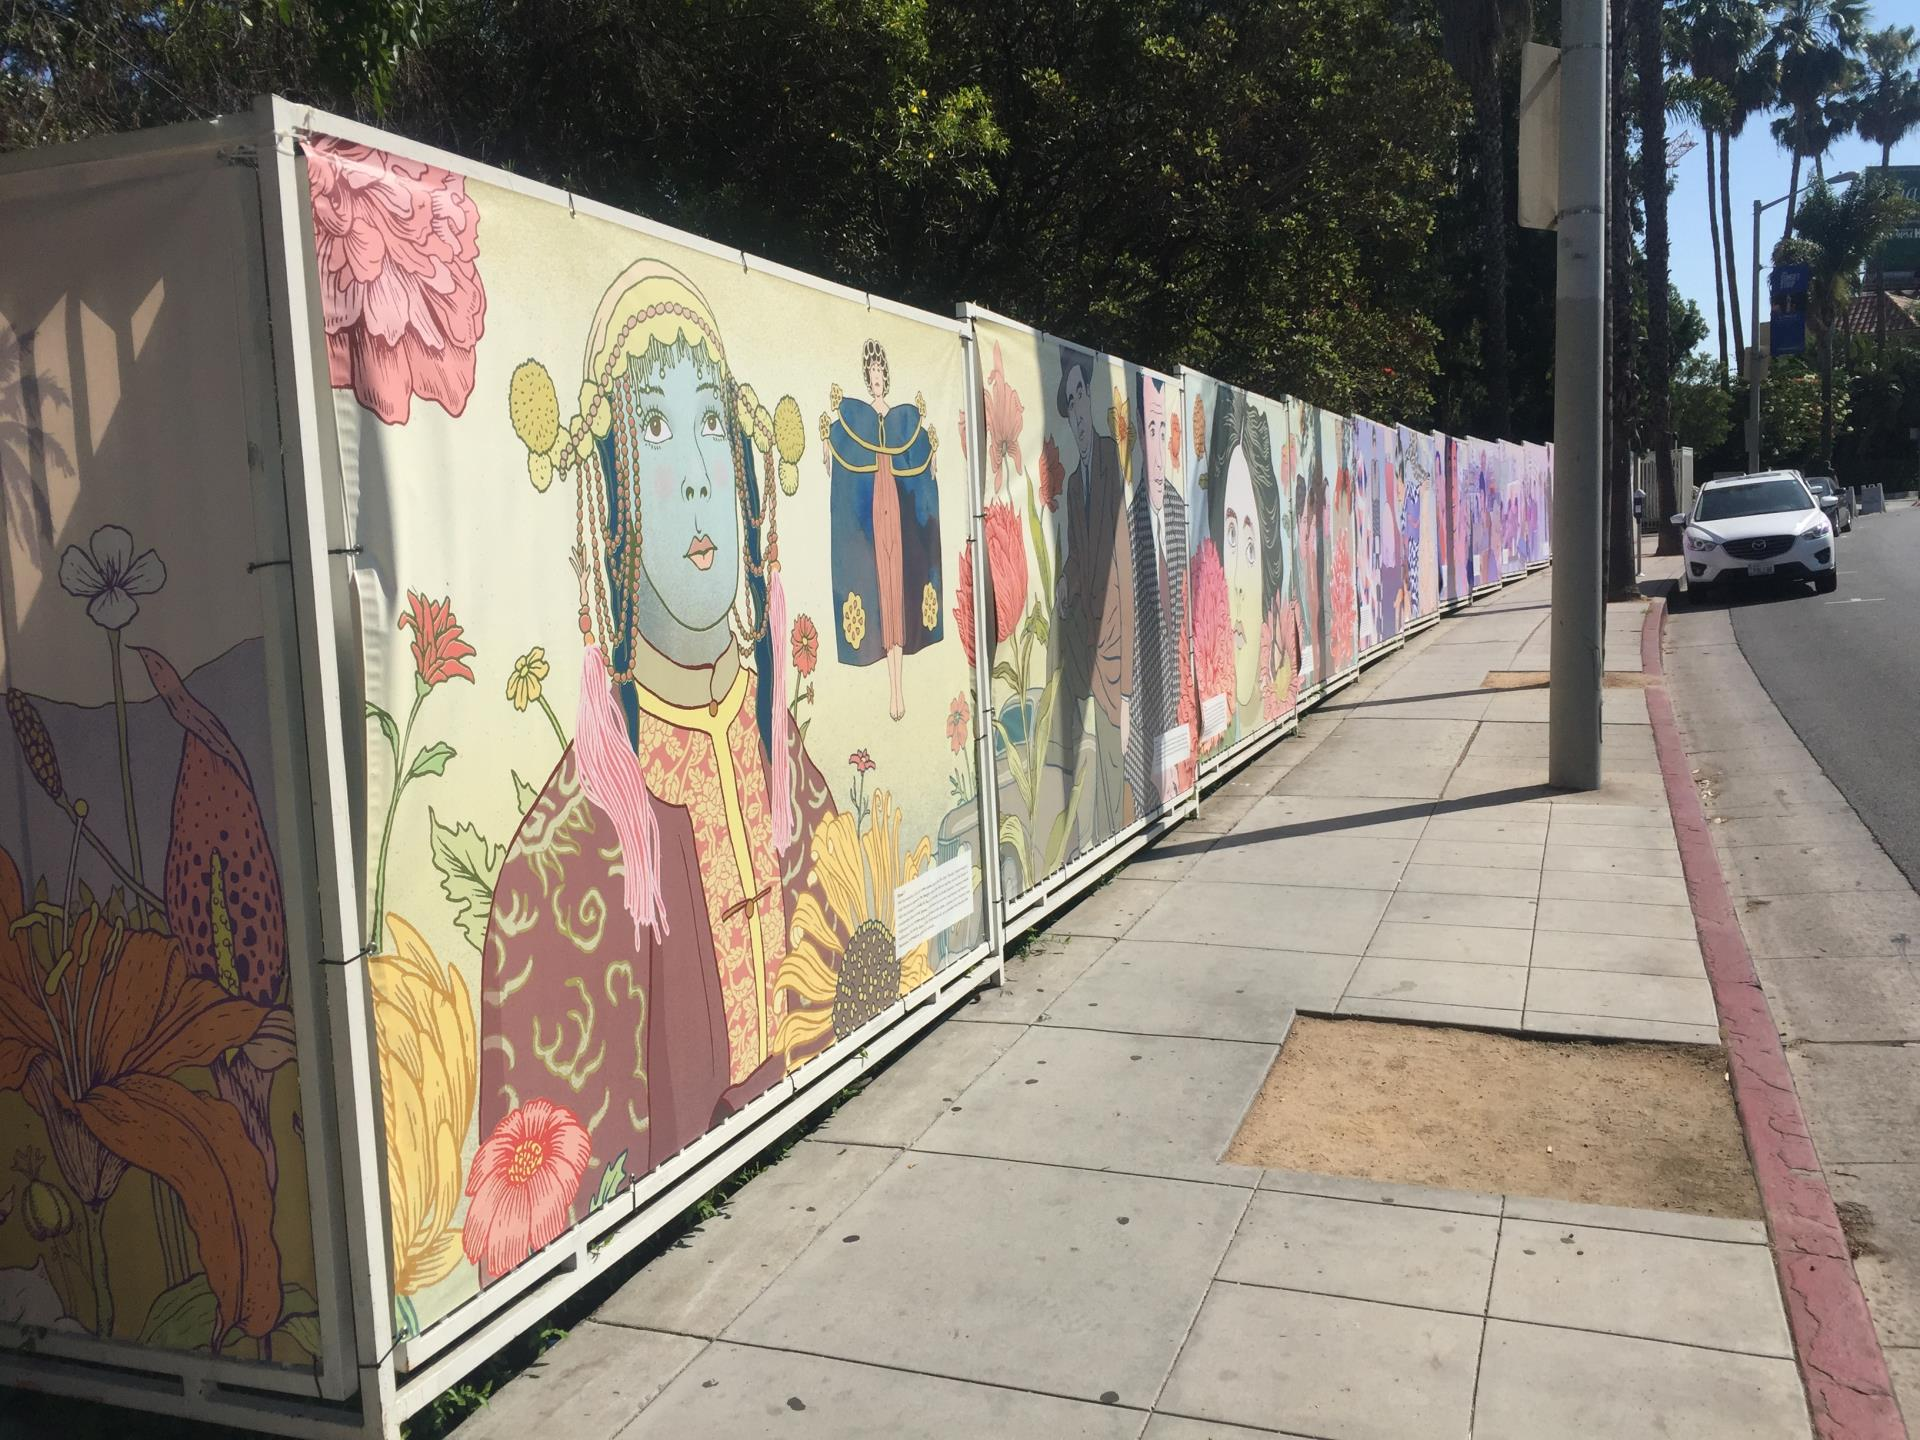 WEHO Muralist Roster | City of West Hollywood